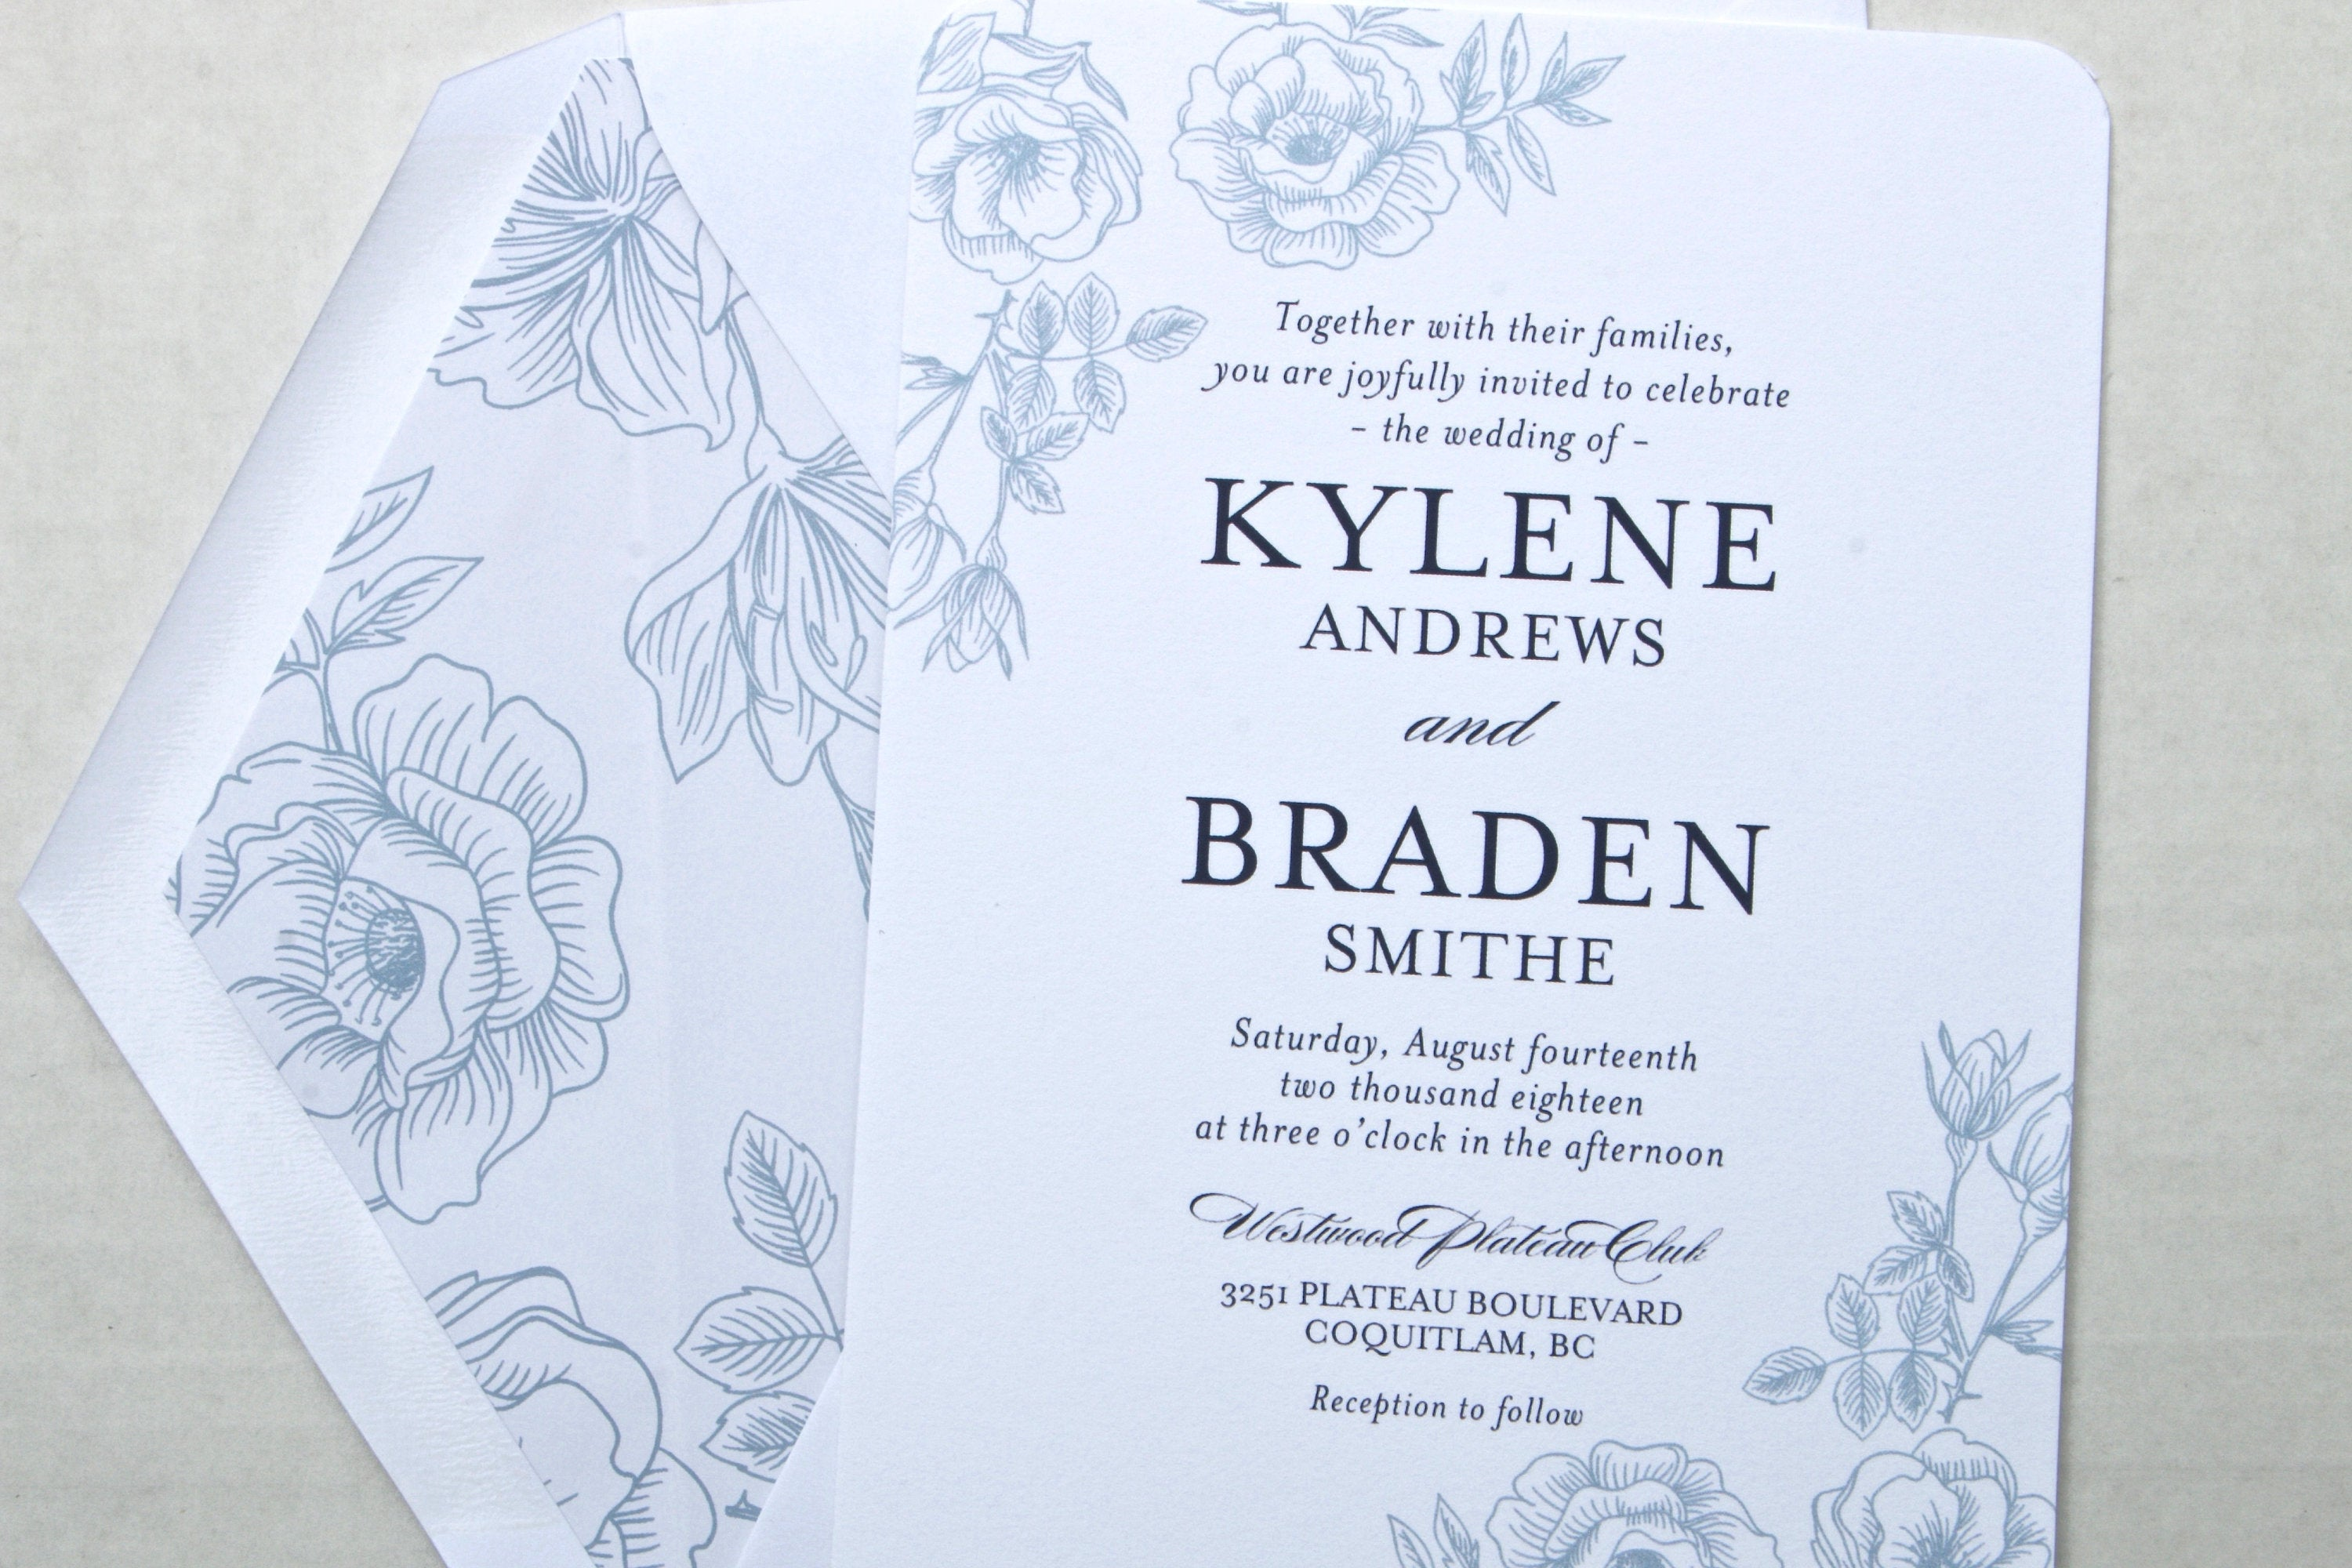 Wedding invitations navy blue and white floral printed wedding wedding invitations navy blue and white floral printed wedding invitation suite printed wedding invites kylene suite with rsvp insert filmwisefo